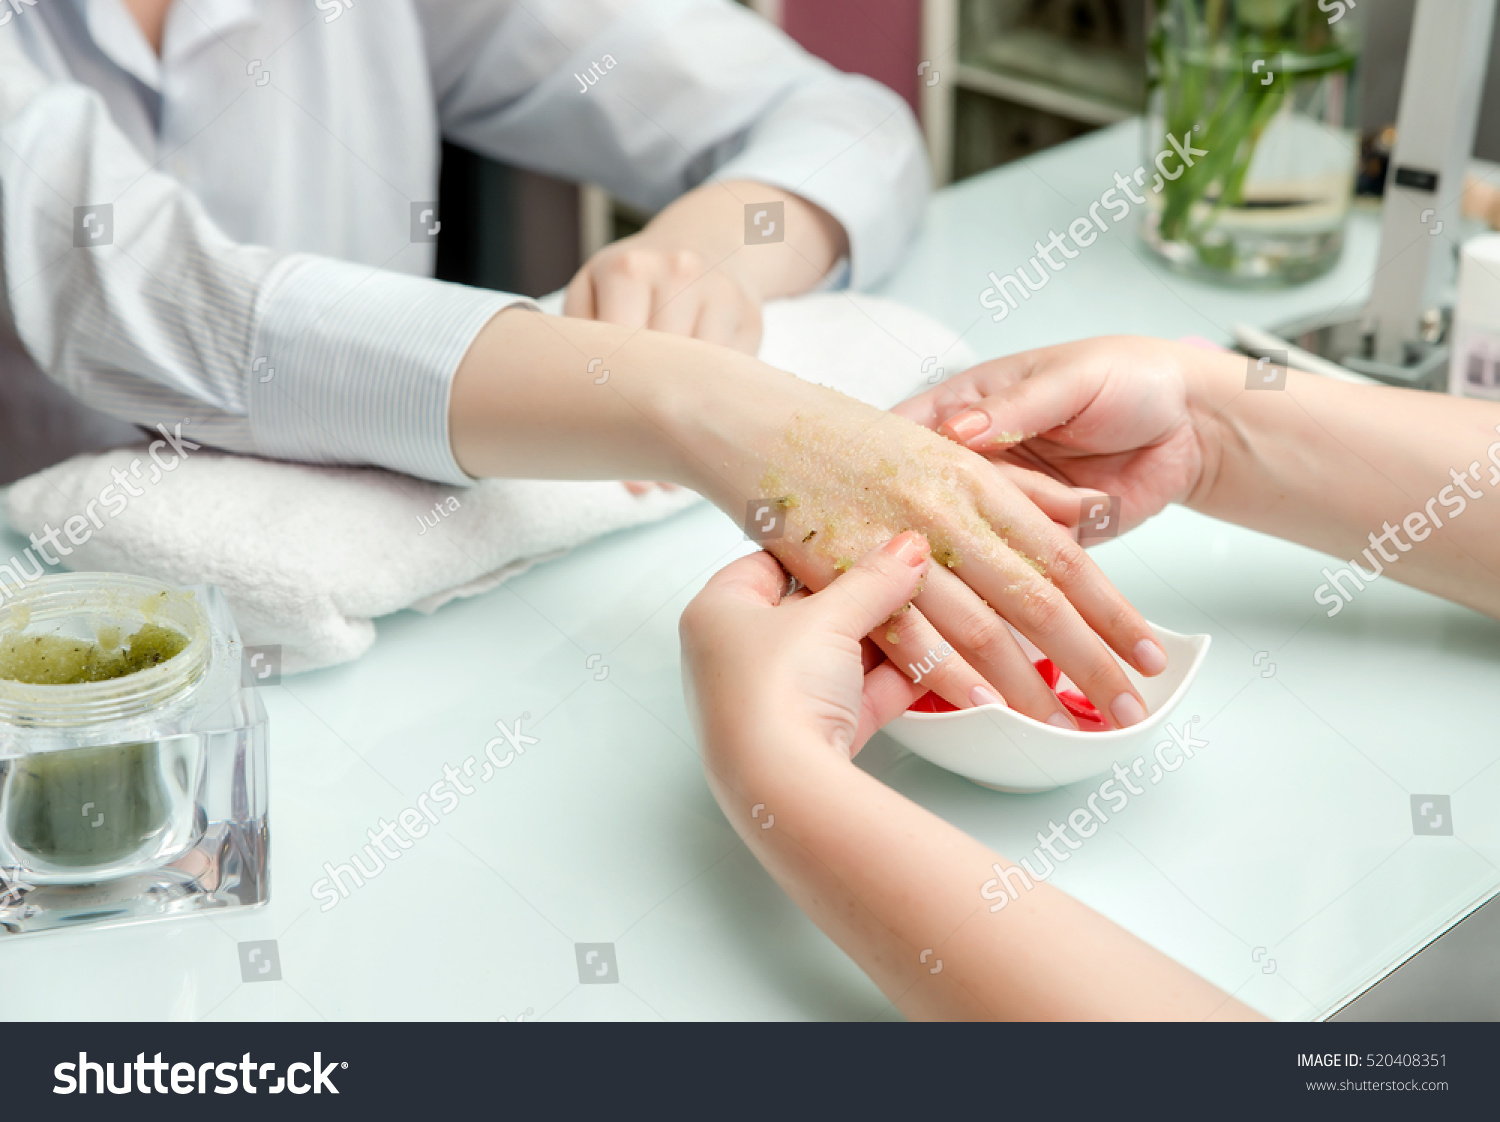 Nail Salon Woman Hands Nail Salon Receiving Hand Stockfoto Jetzt Bearbeiten